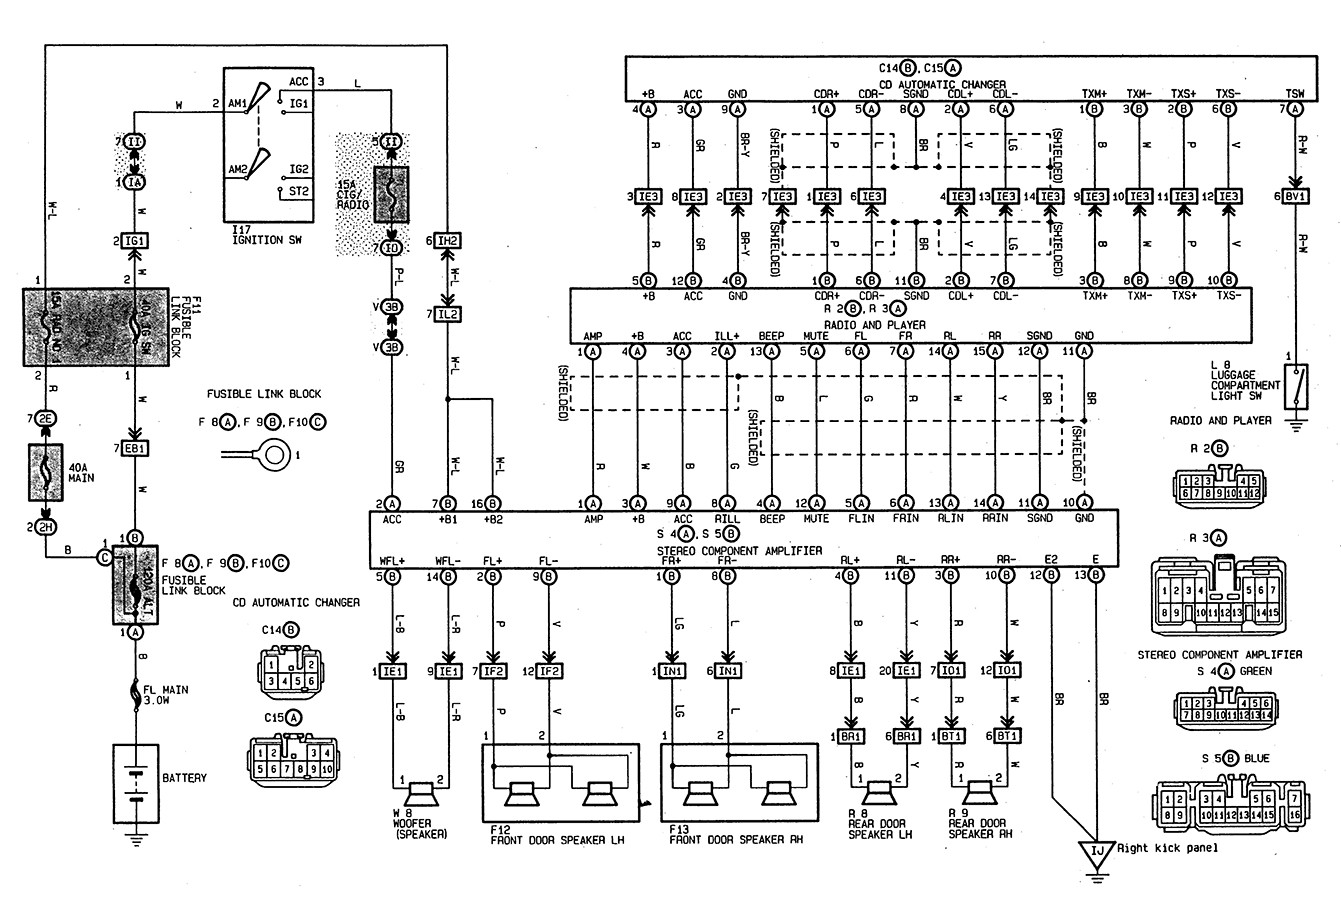 [WRG-5168] 97 Toyota Corolla Engine Diagram